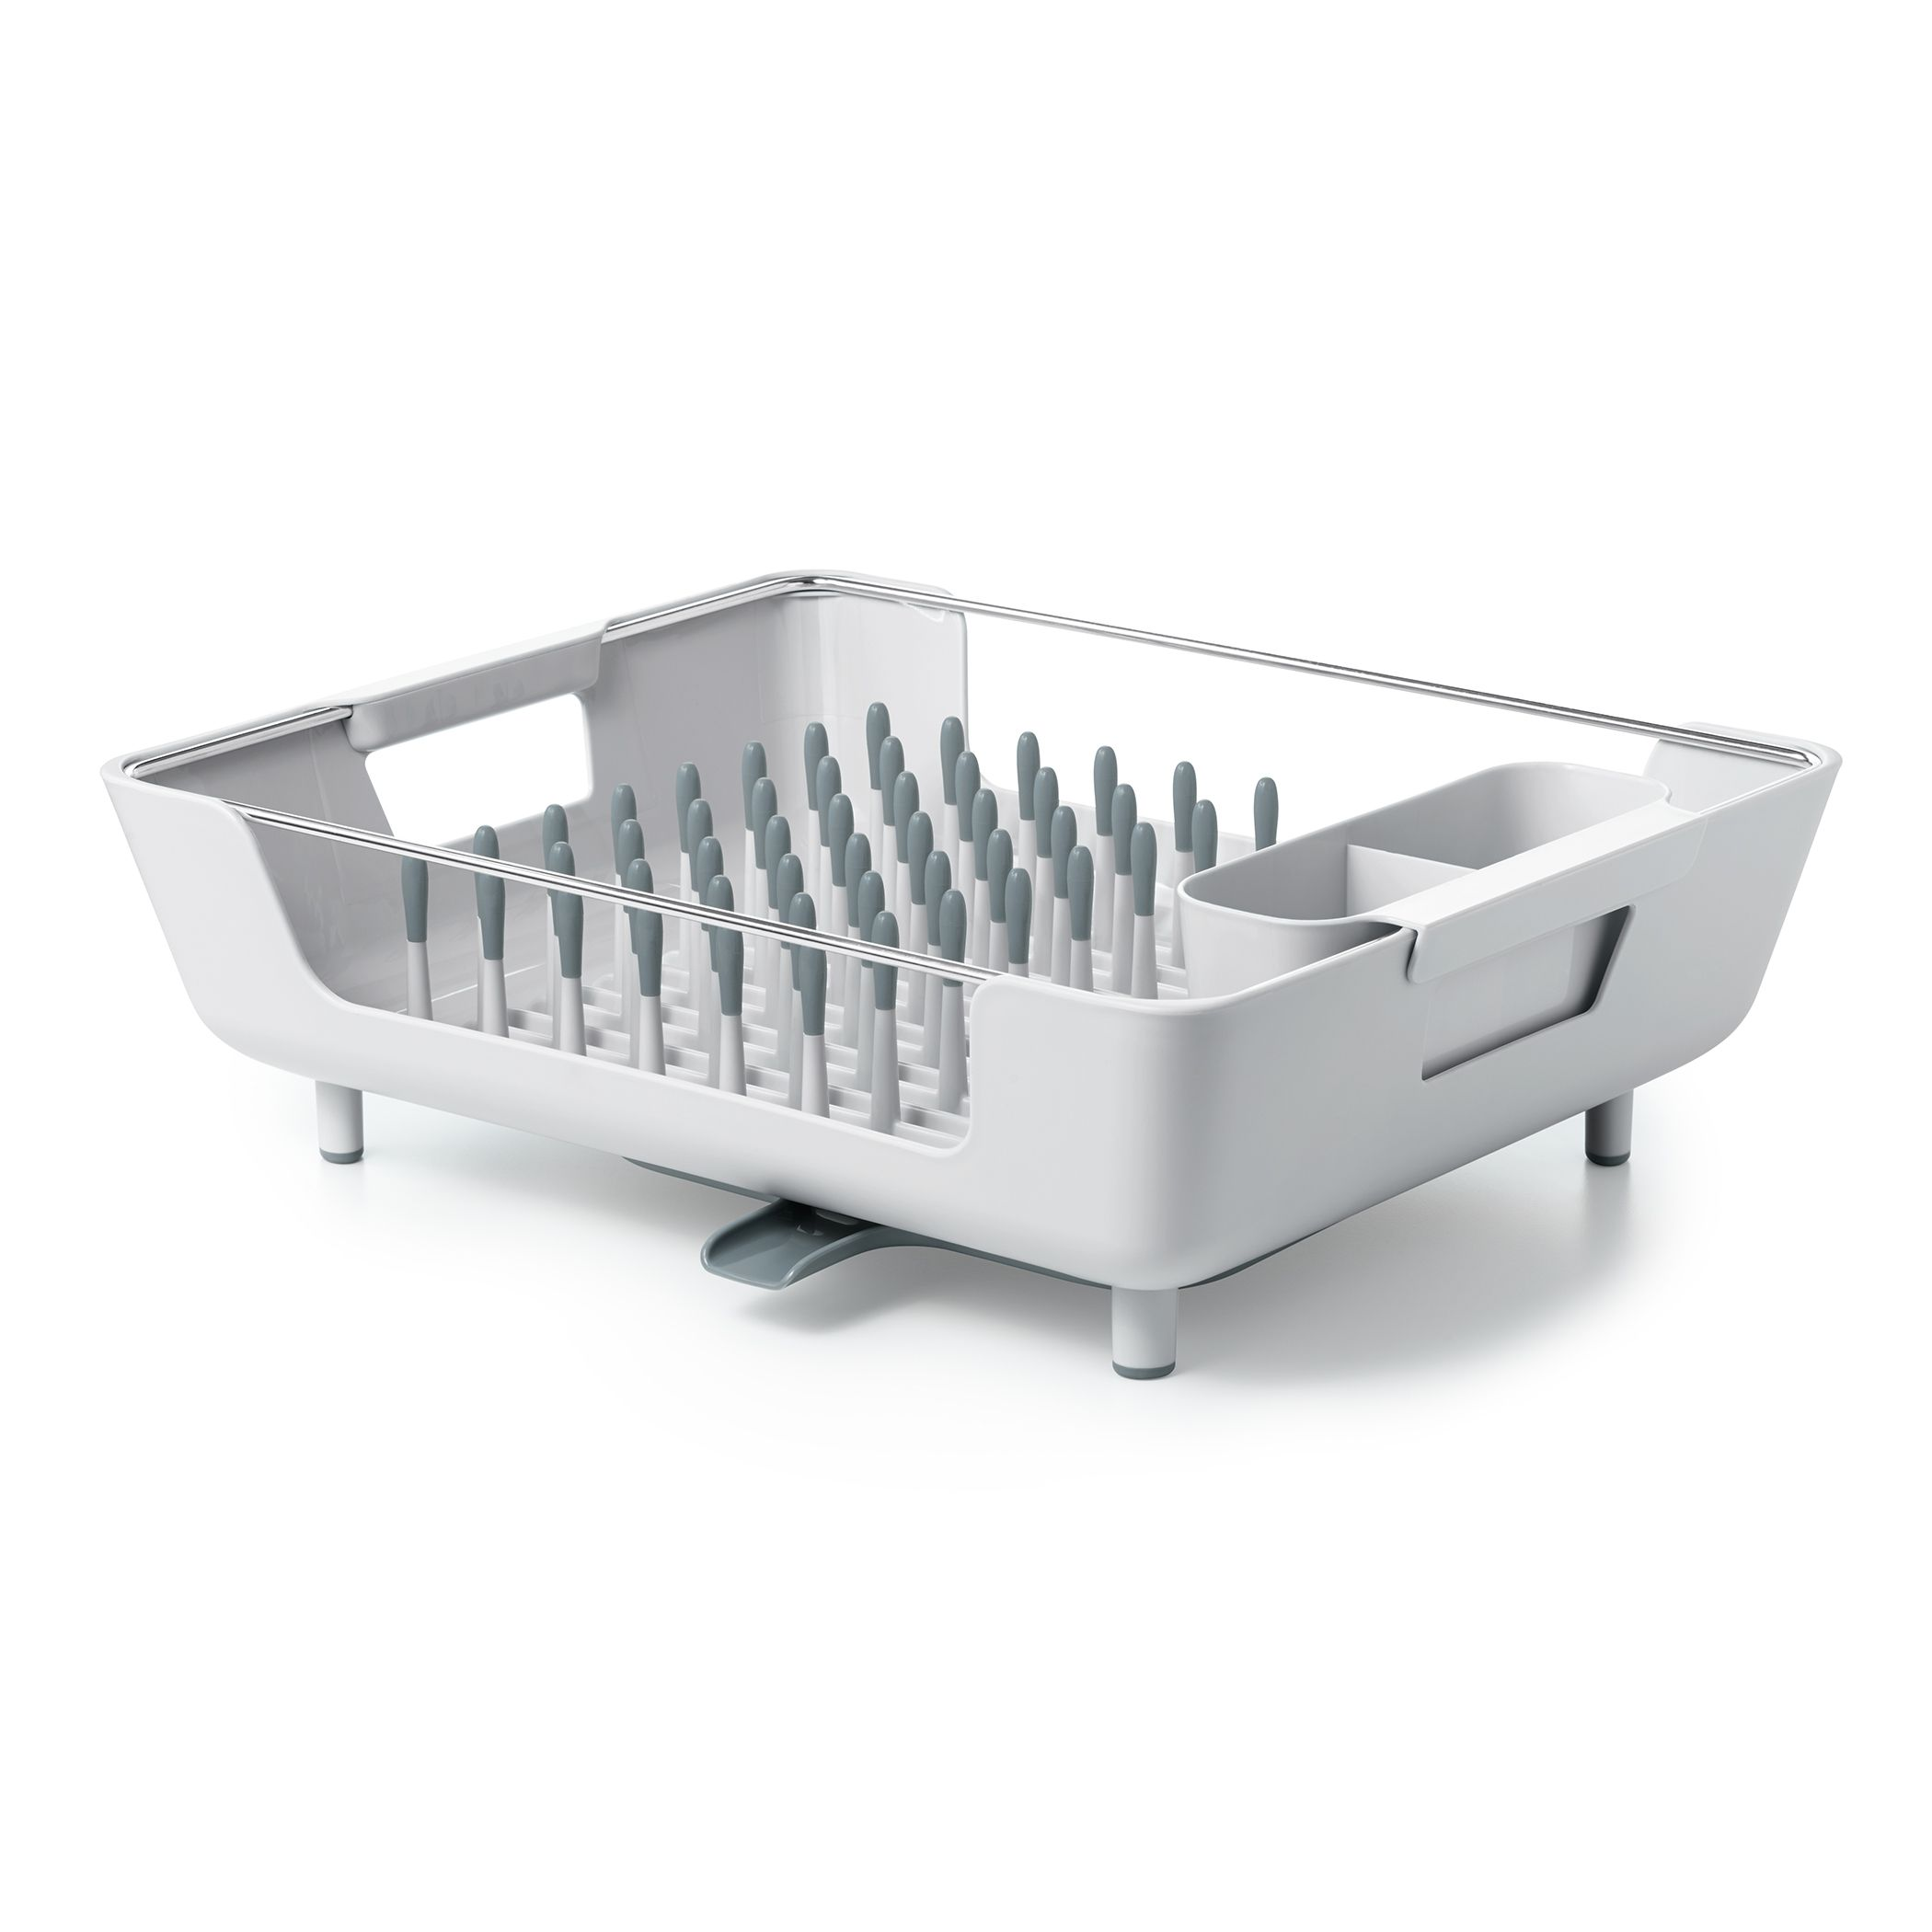 OXO Good Grips Peg Dish Rack